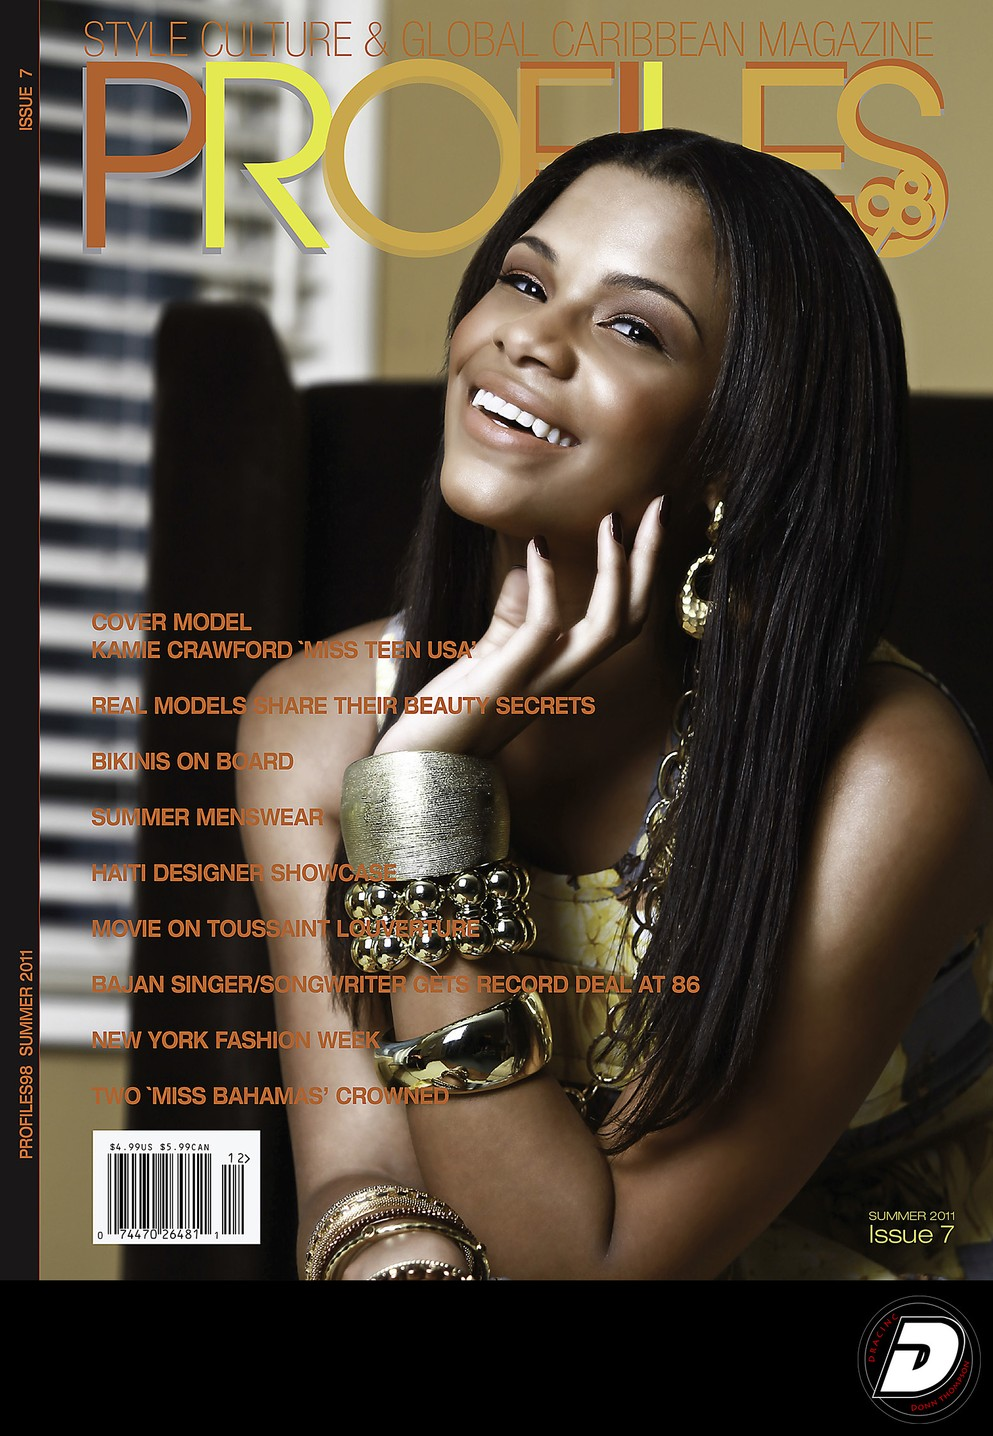 Profiles98 Magazine Issue #7 Summer 2011 Cover